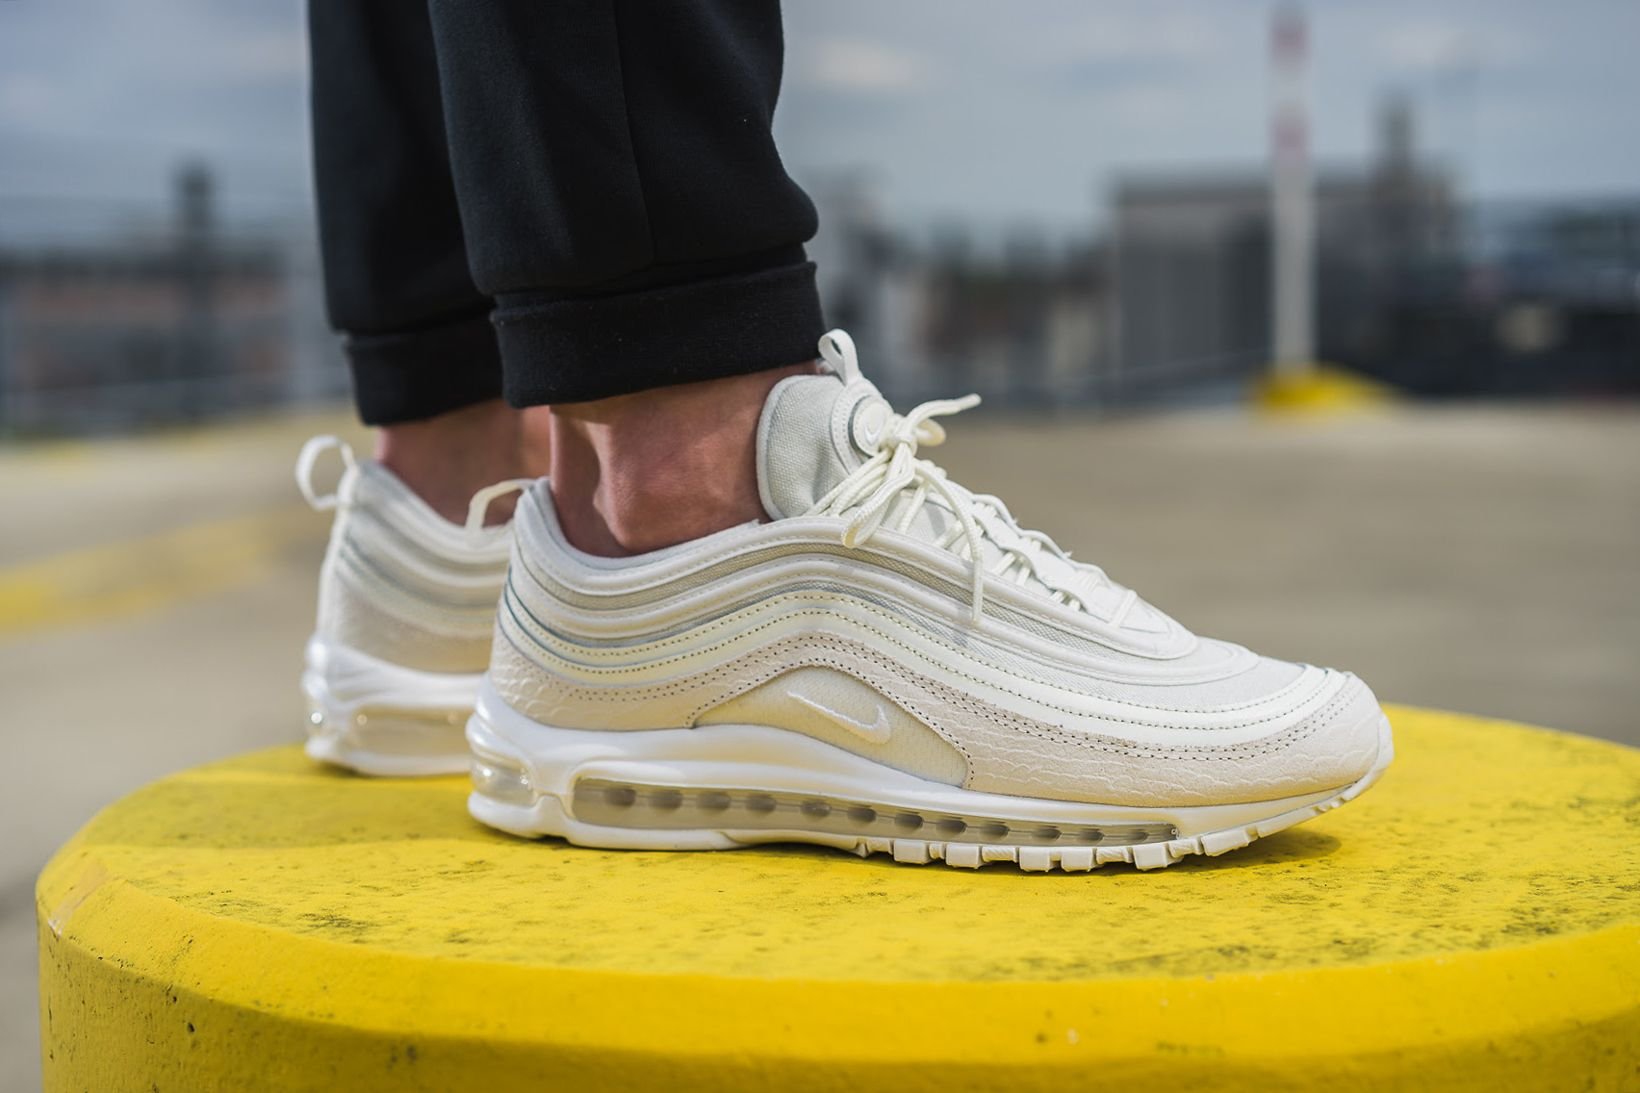 0d690f1fdc45 An On-Feet Look at the Nike Air Max 97